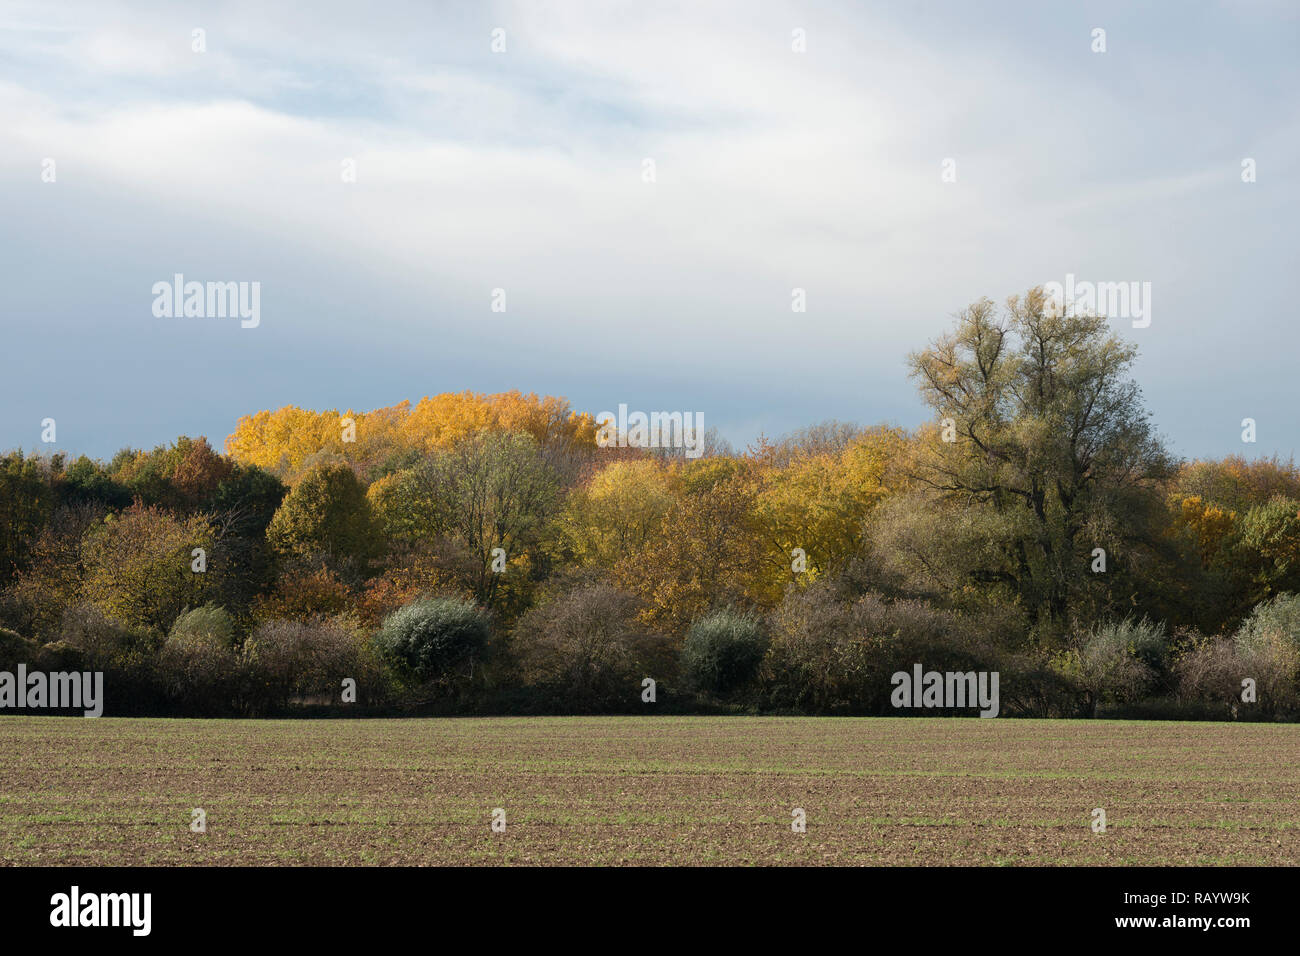 Brilliant fall colors along at the edge of a forest, autumn colored foliage in late afternoon, Europe. - Stock Image